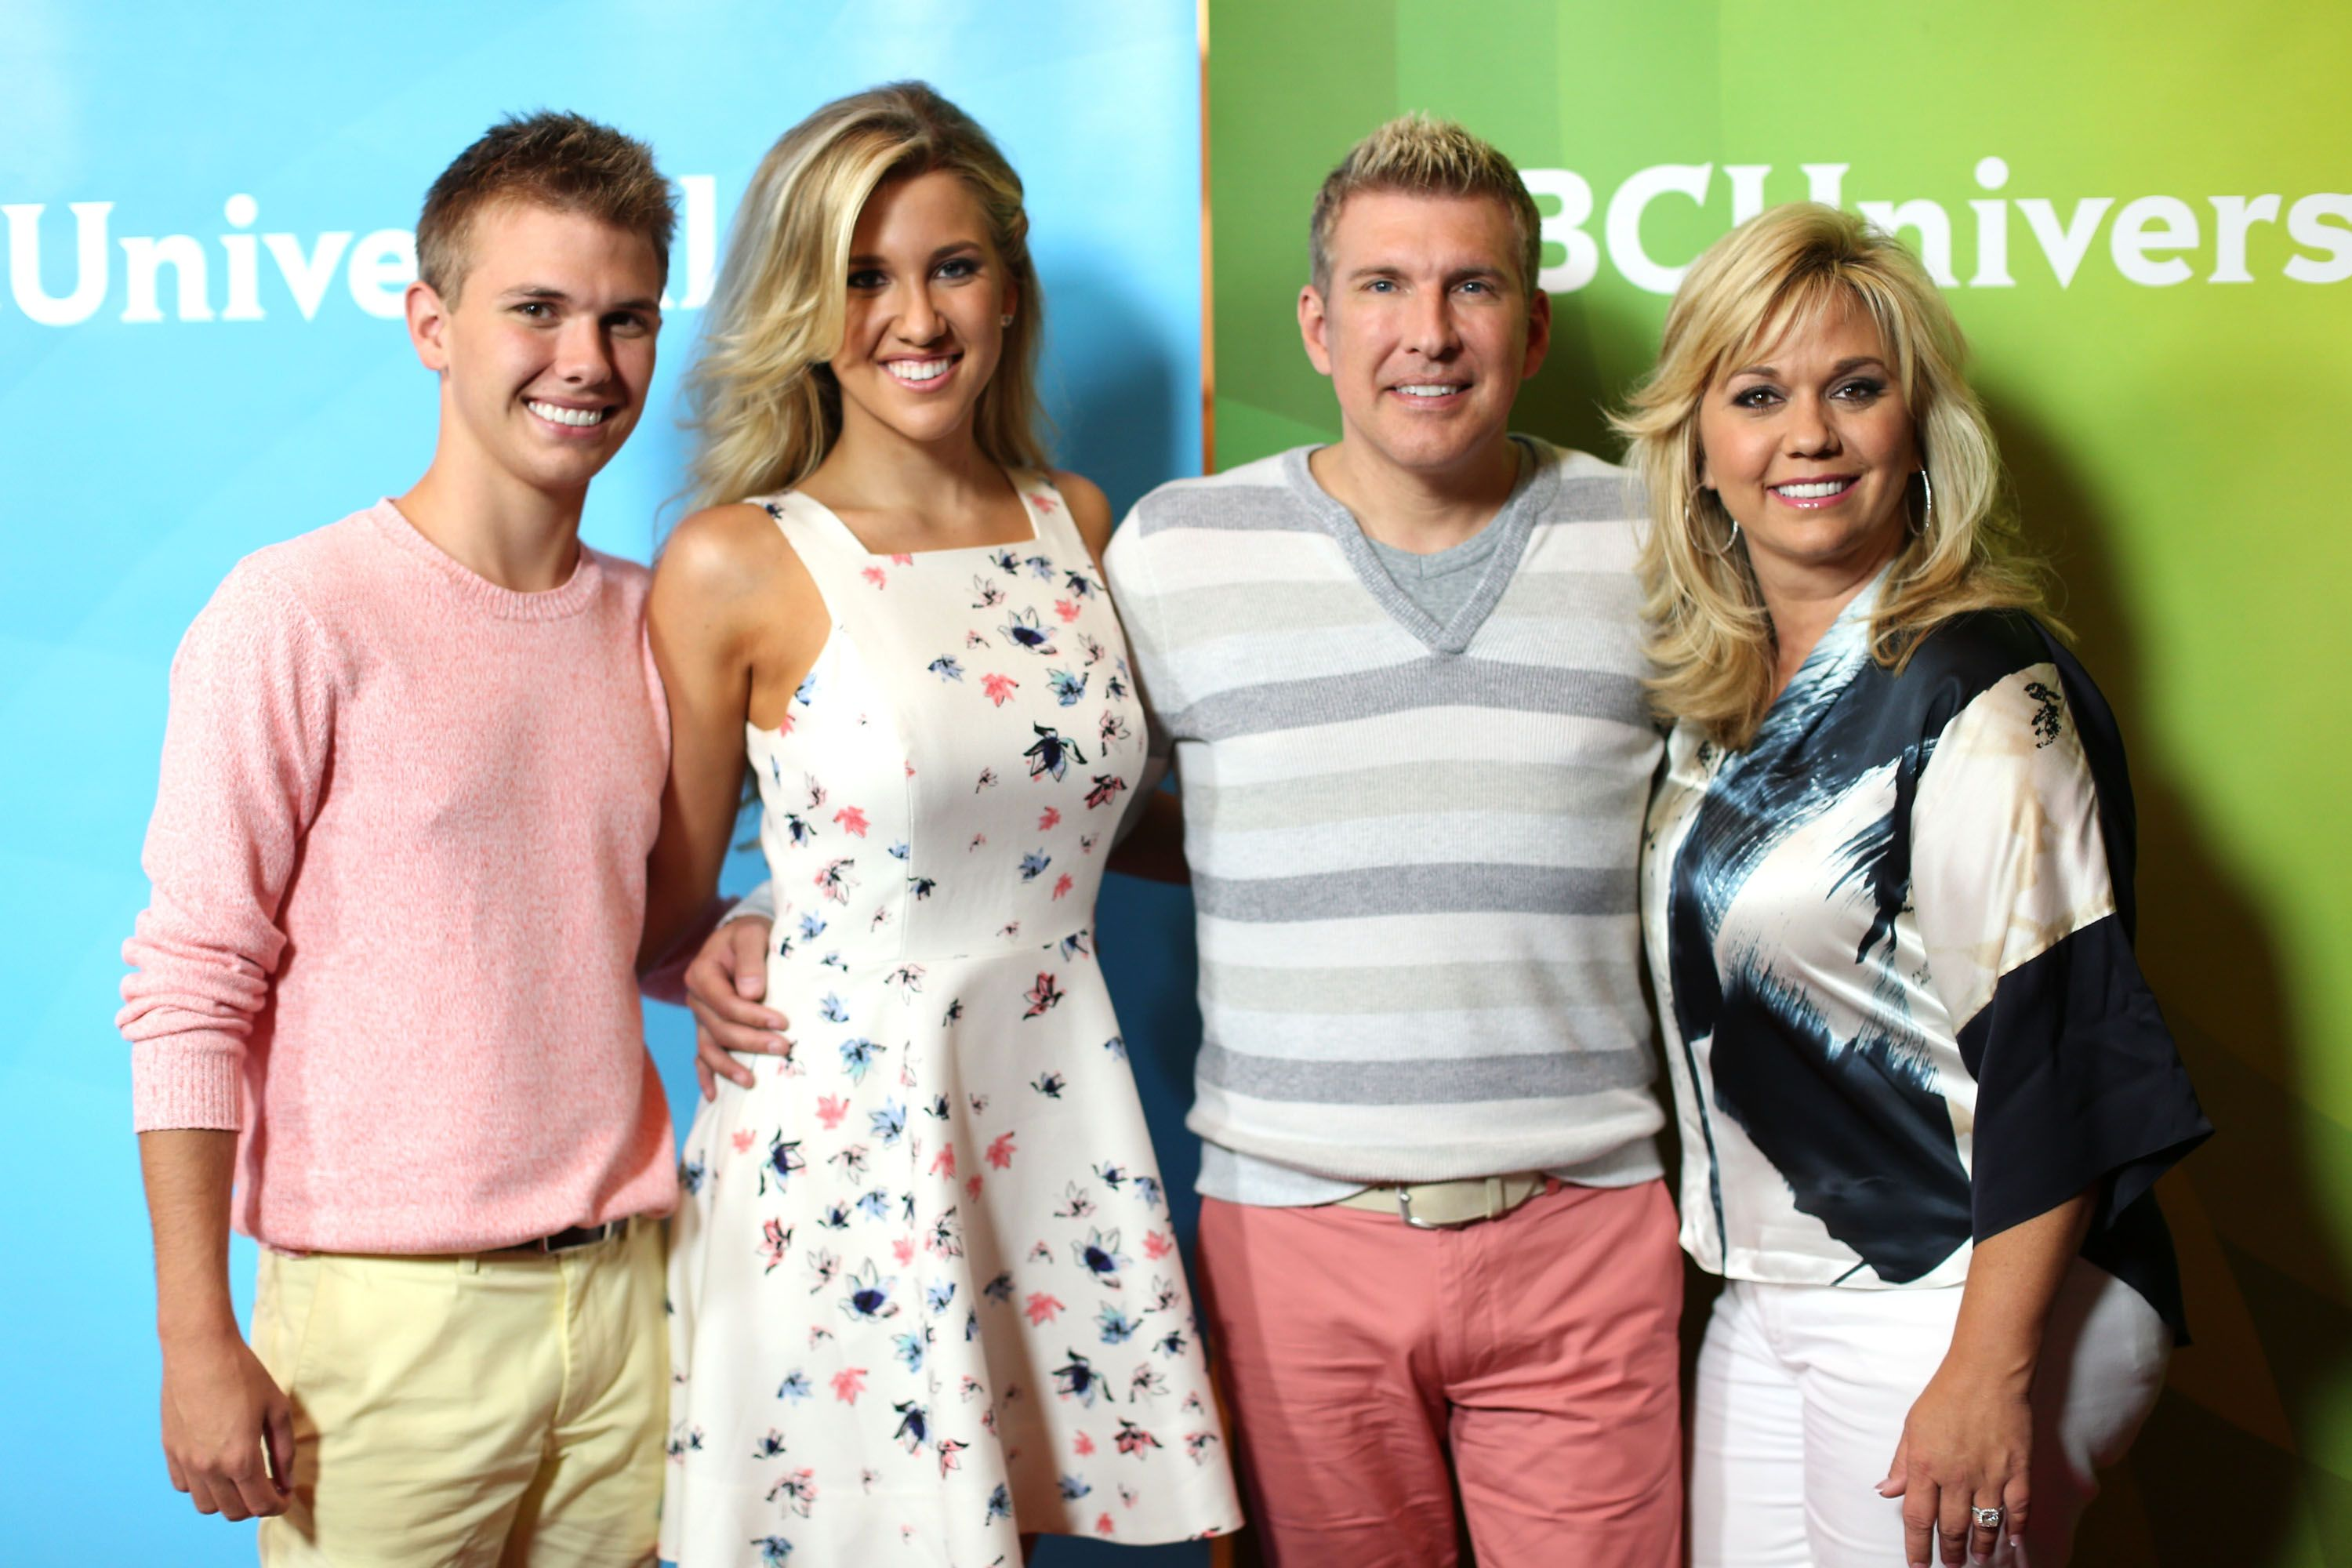 Chase Chrisley, Savannah Chrisley, Todd Chrisley and Julie Chrisley attend NBCUniversal's 2014 Summer TCA Tour day 2 at The Beverly Hilton Hotel on July 14, 2014 in Beverly Hills, California   Photo: Getty Images